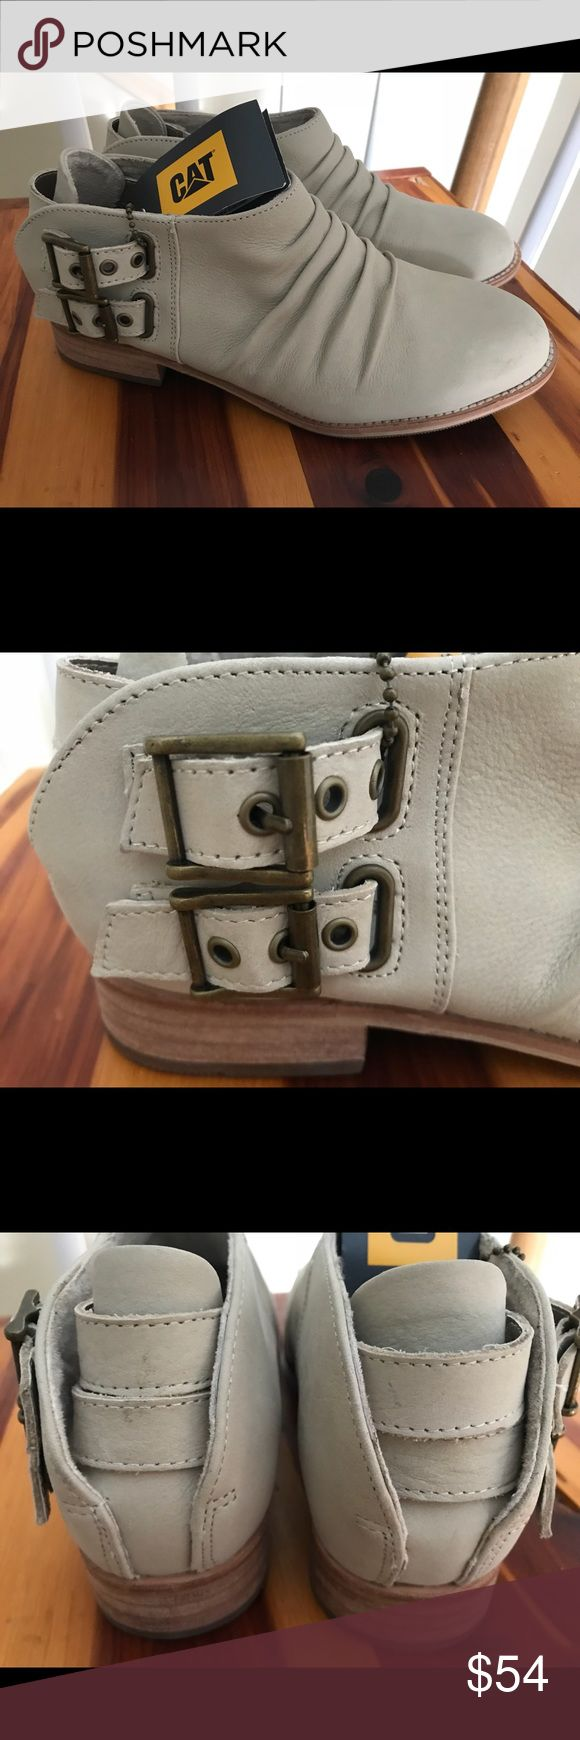 CAT Caterpillar Earthmovers Double Monk Buckle 7.5 Brand new with tags- CAT Caterpillar Earthmovers Double Monk Buckle Slip-On Loafer. Leather. Buckles are adjustable and functional. SZ 7.5 Caterpillar Shoes Flats & Loafers